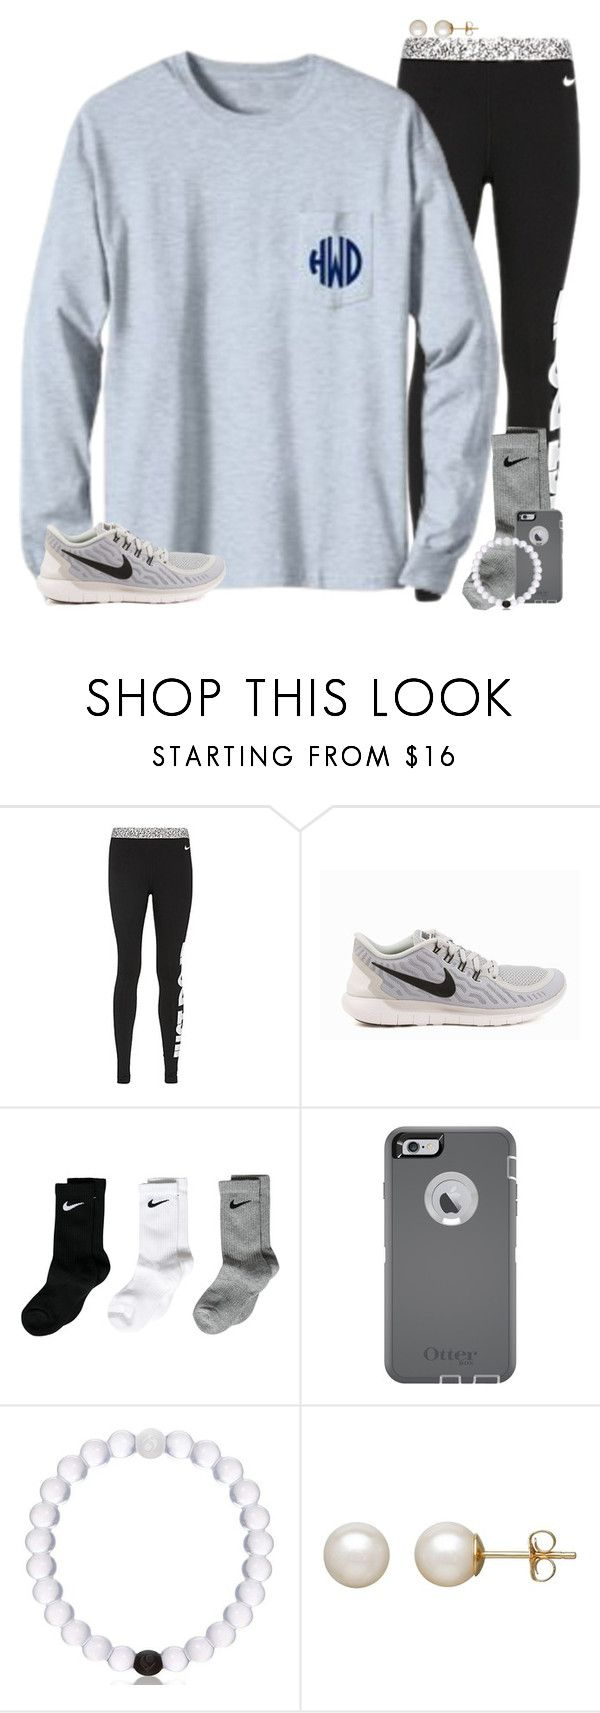 """""""Play practice tomorrow"""" by katew4019 ❤ liked on Polyvore featuring NIKE, OtterBox, Honora, women's clothing, women's fashion, women, female, woman, misses and juniors"""